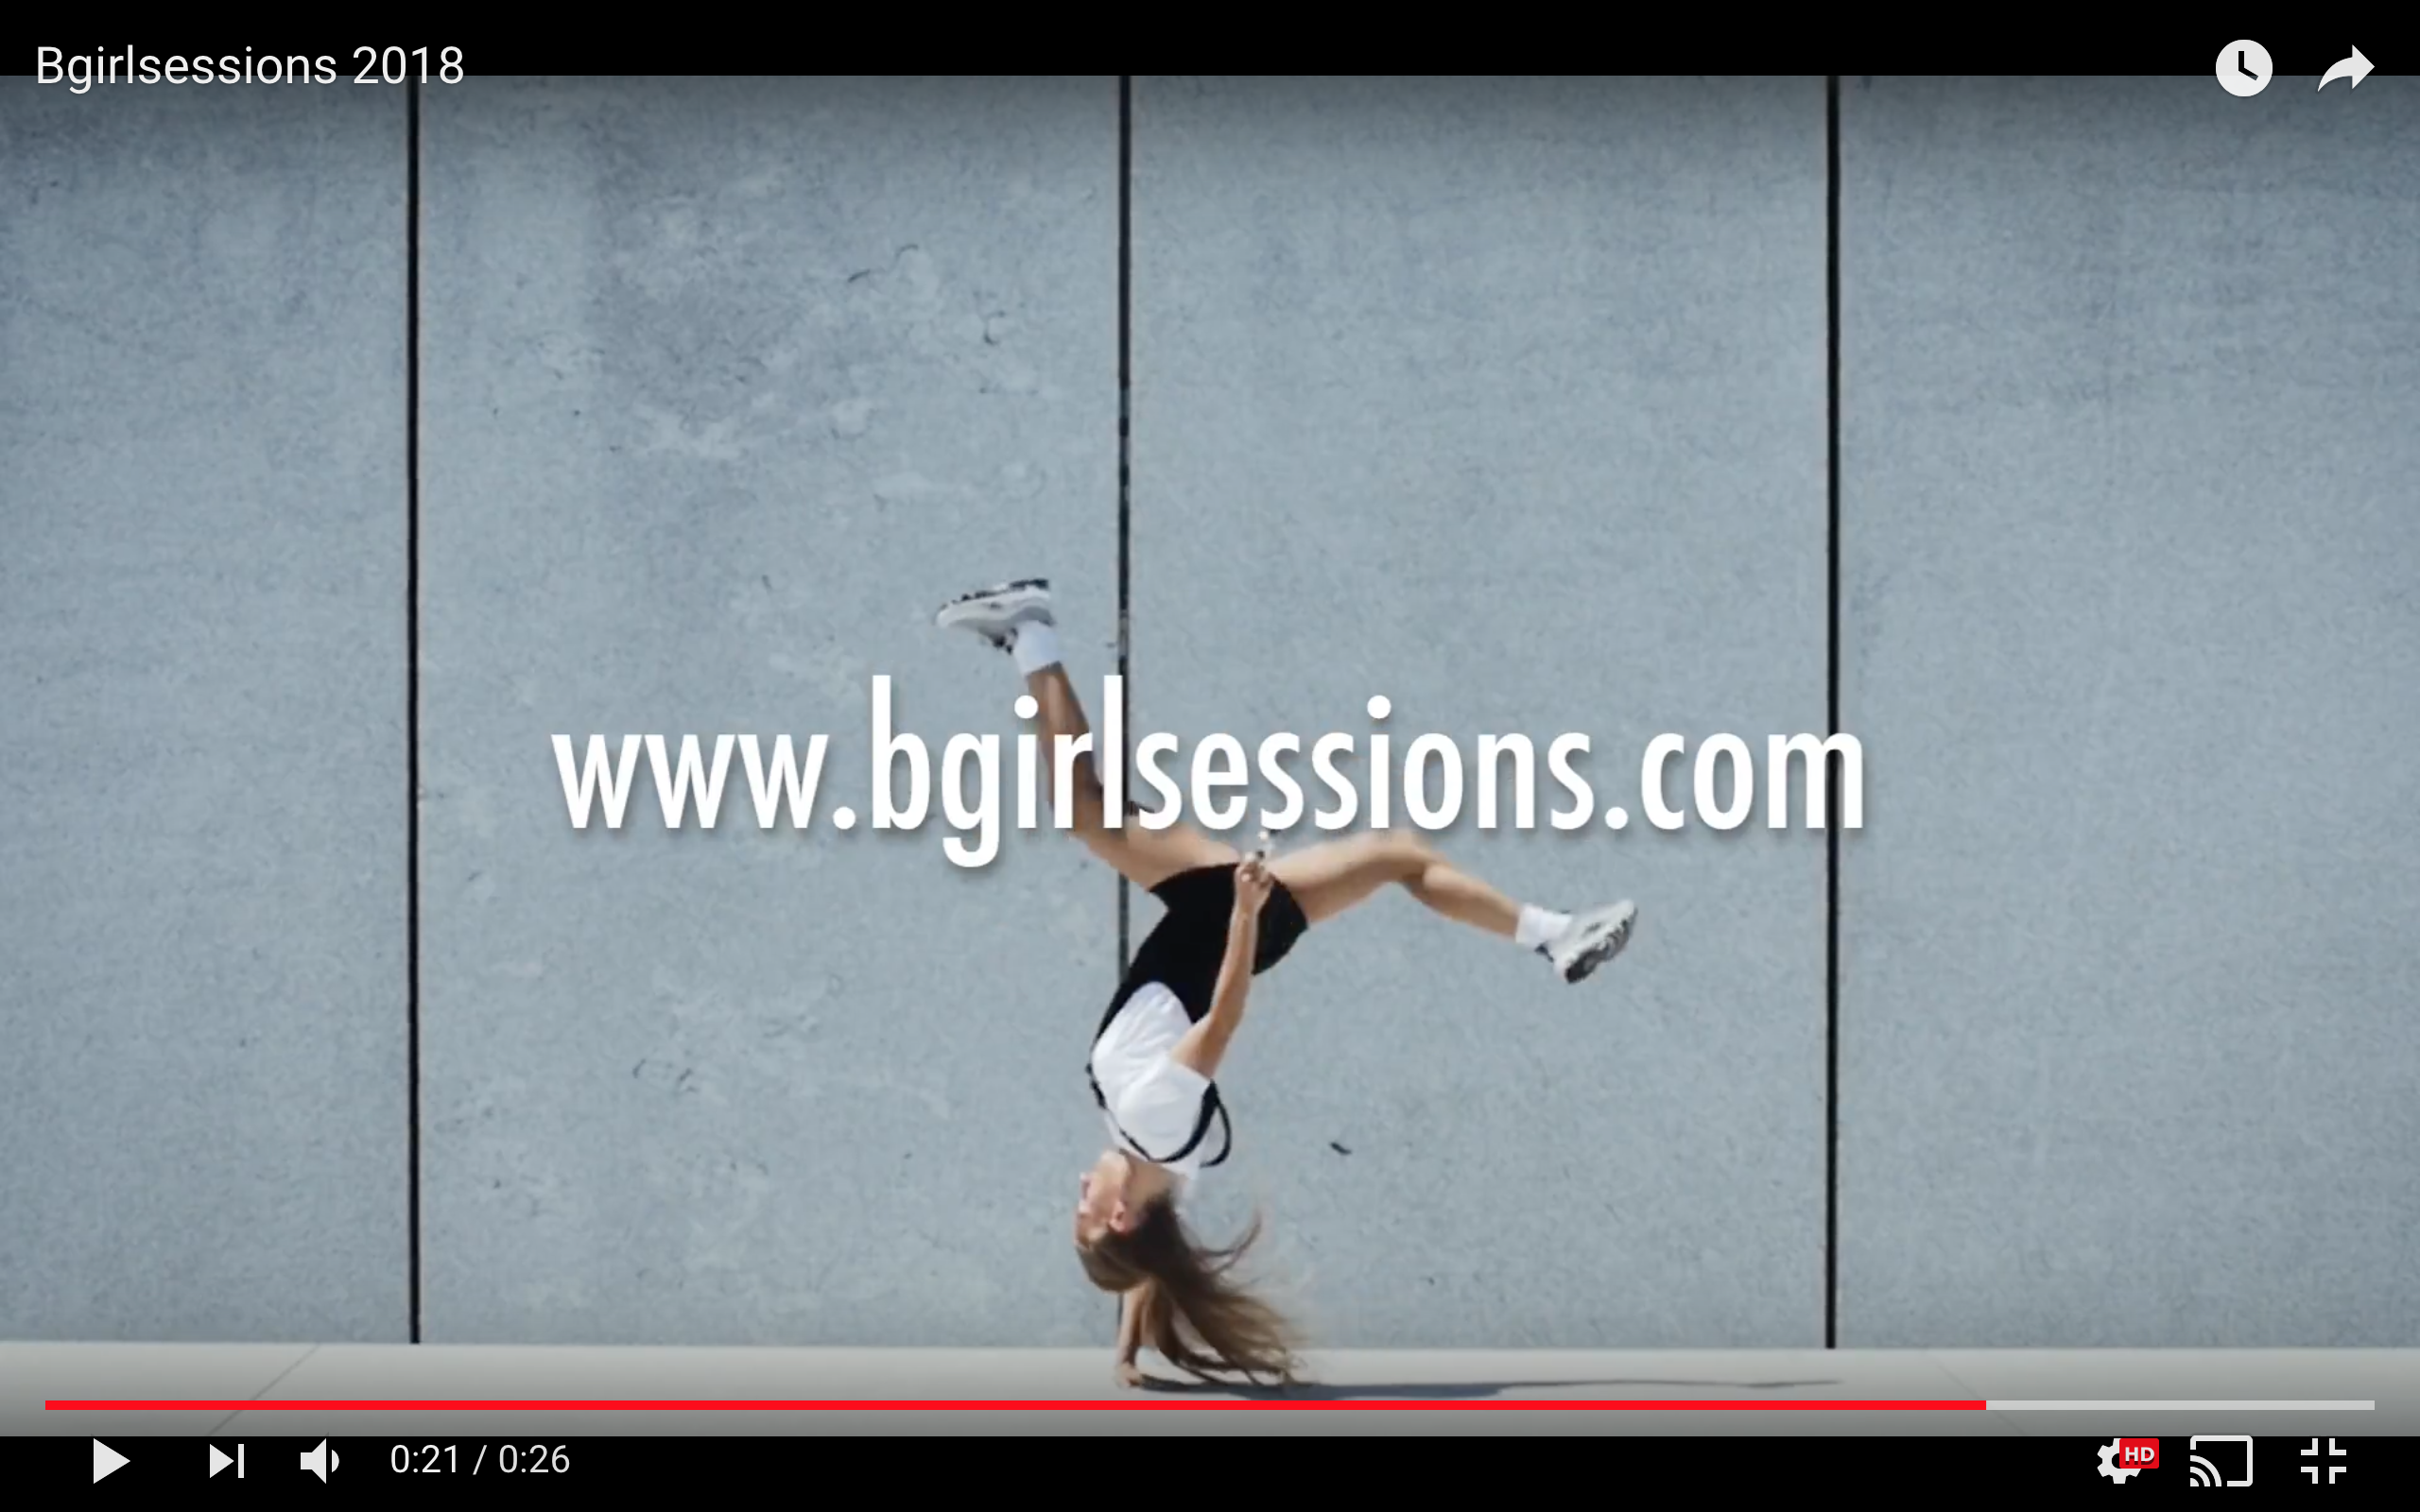 BGIRLSESSIONS BATTLE JUNE 23